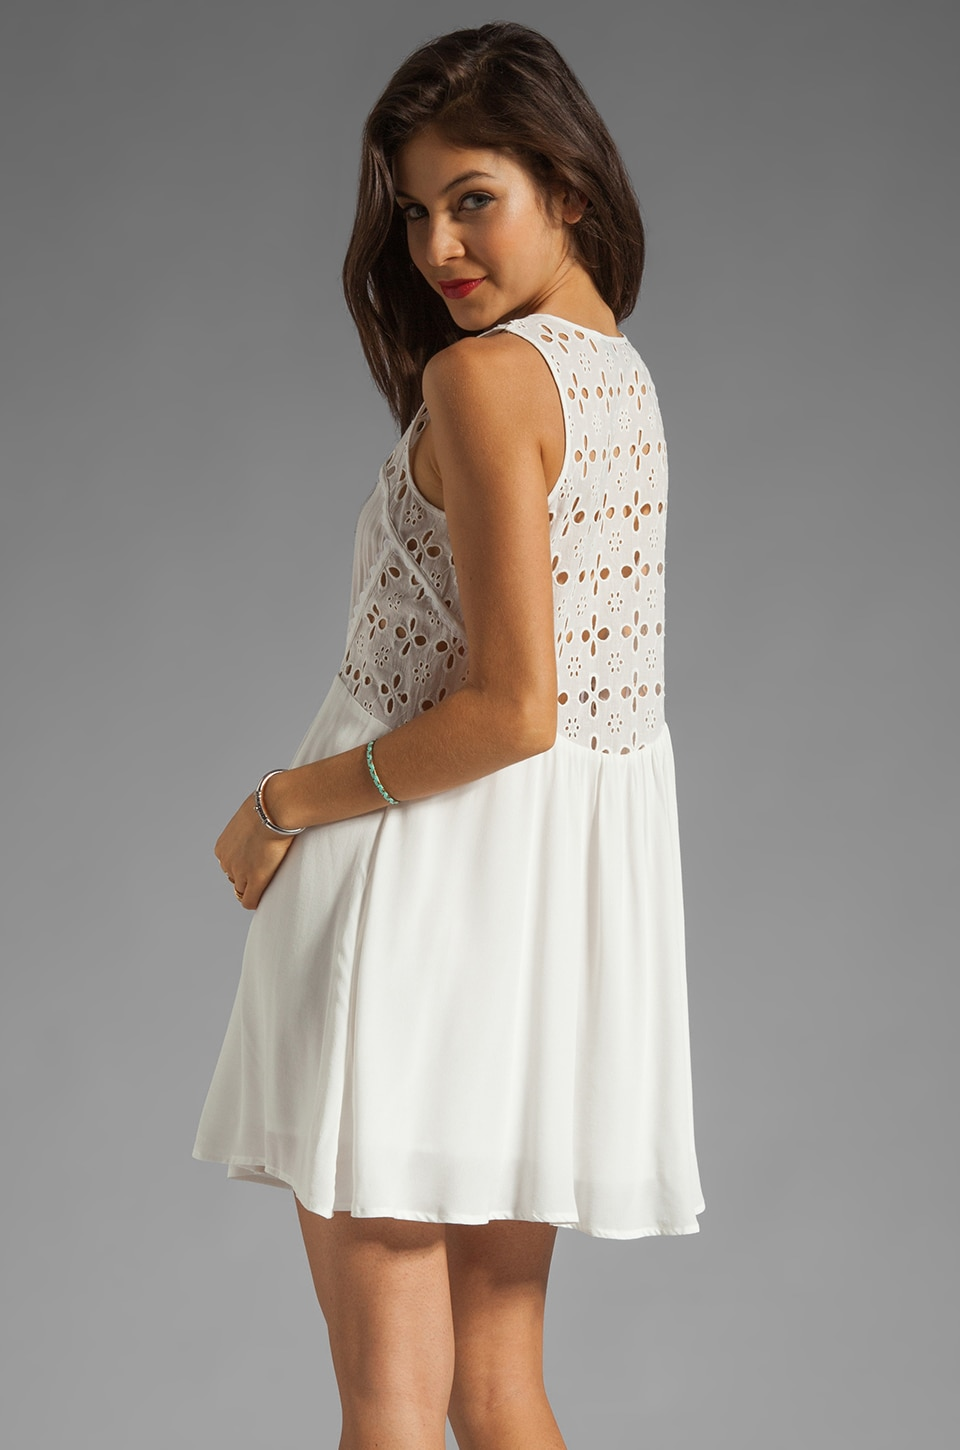 Wish Serene Dress in White Embroidery